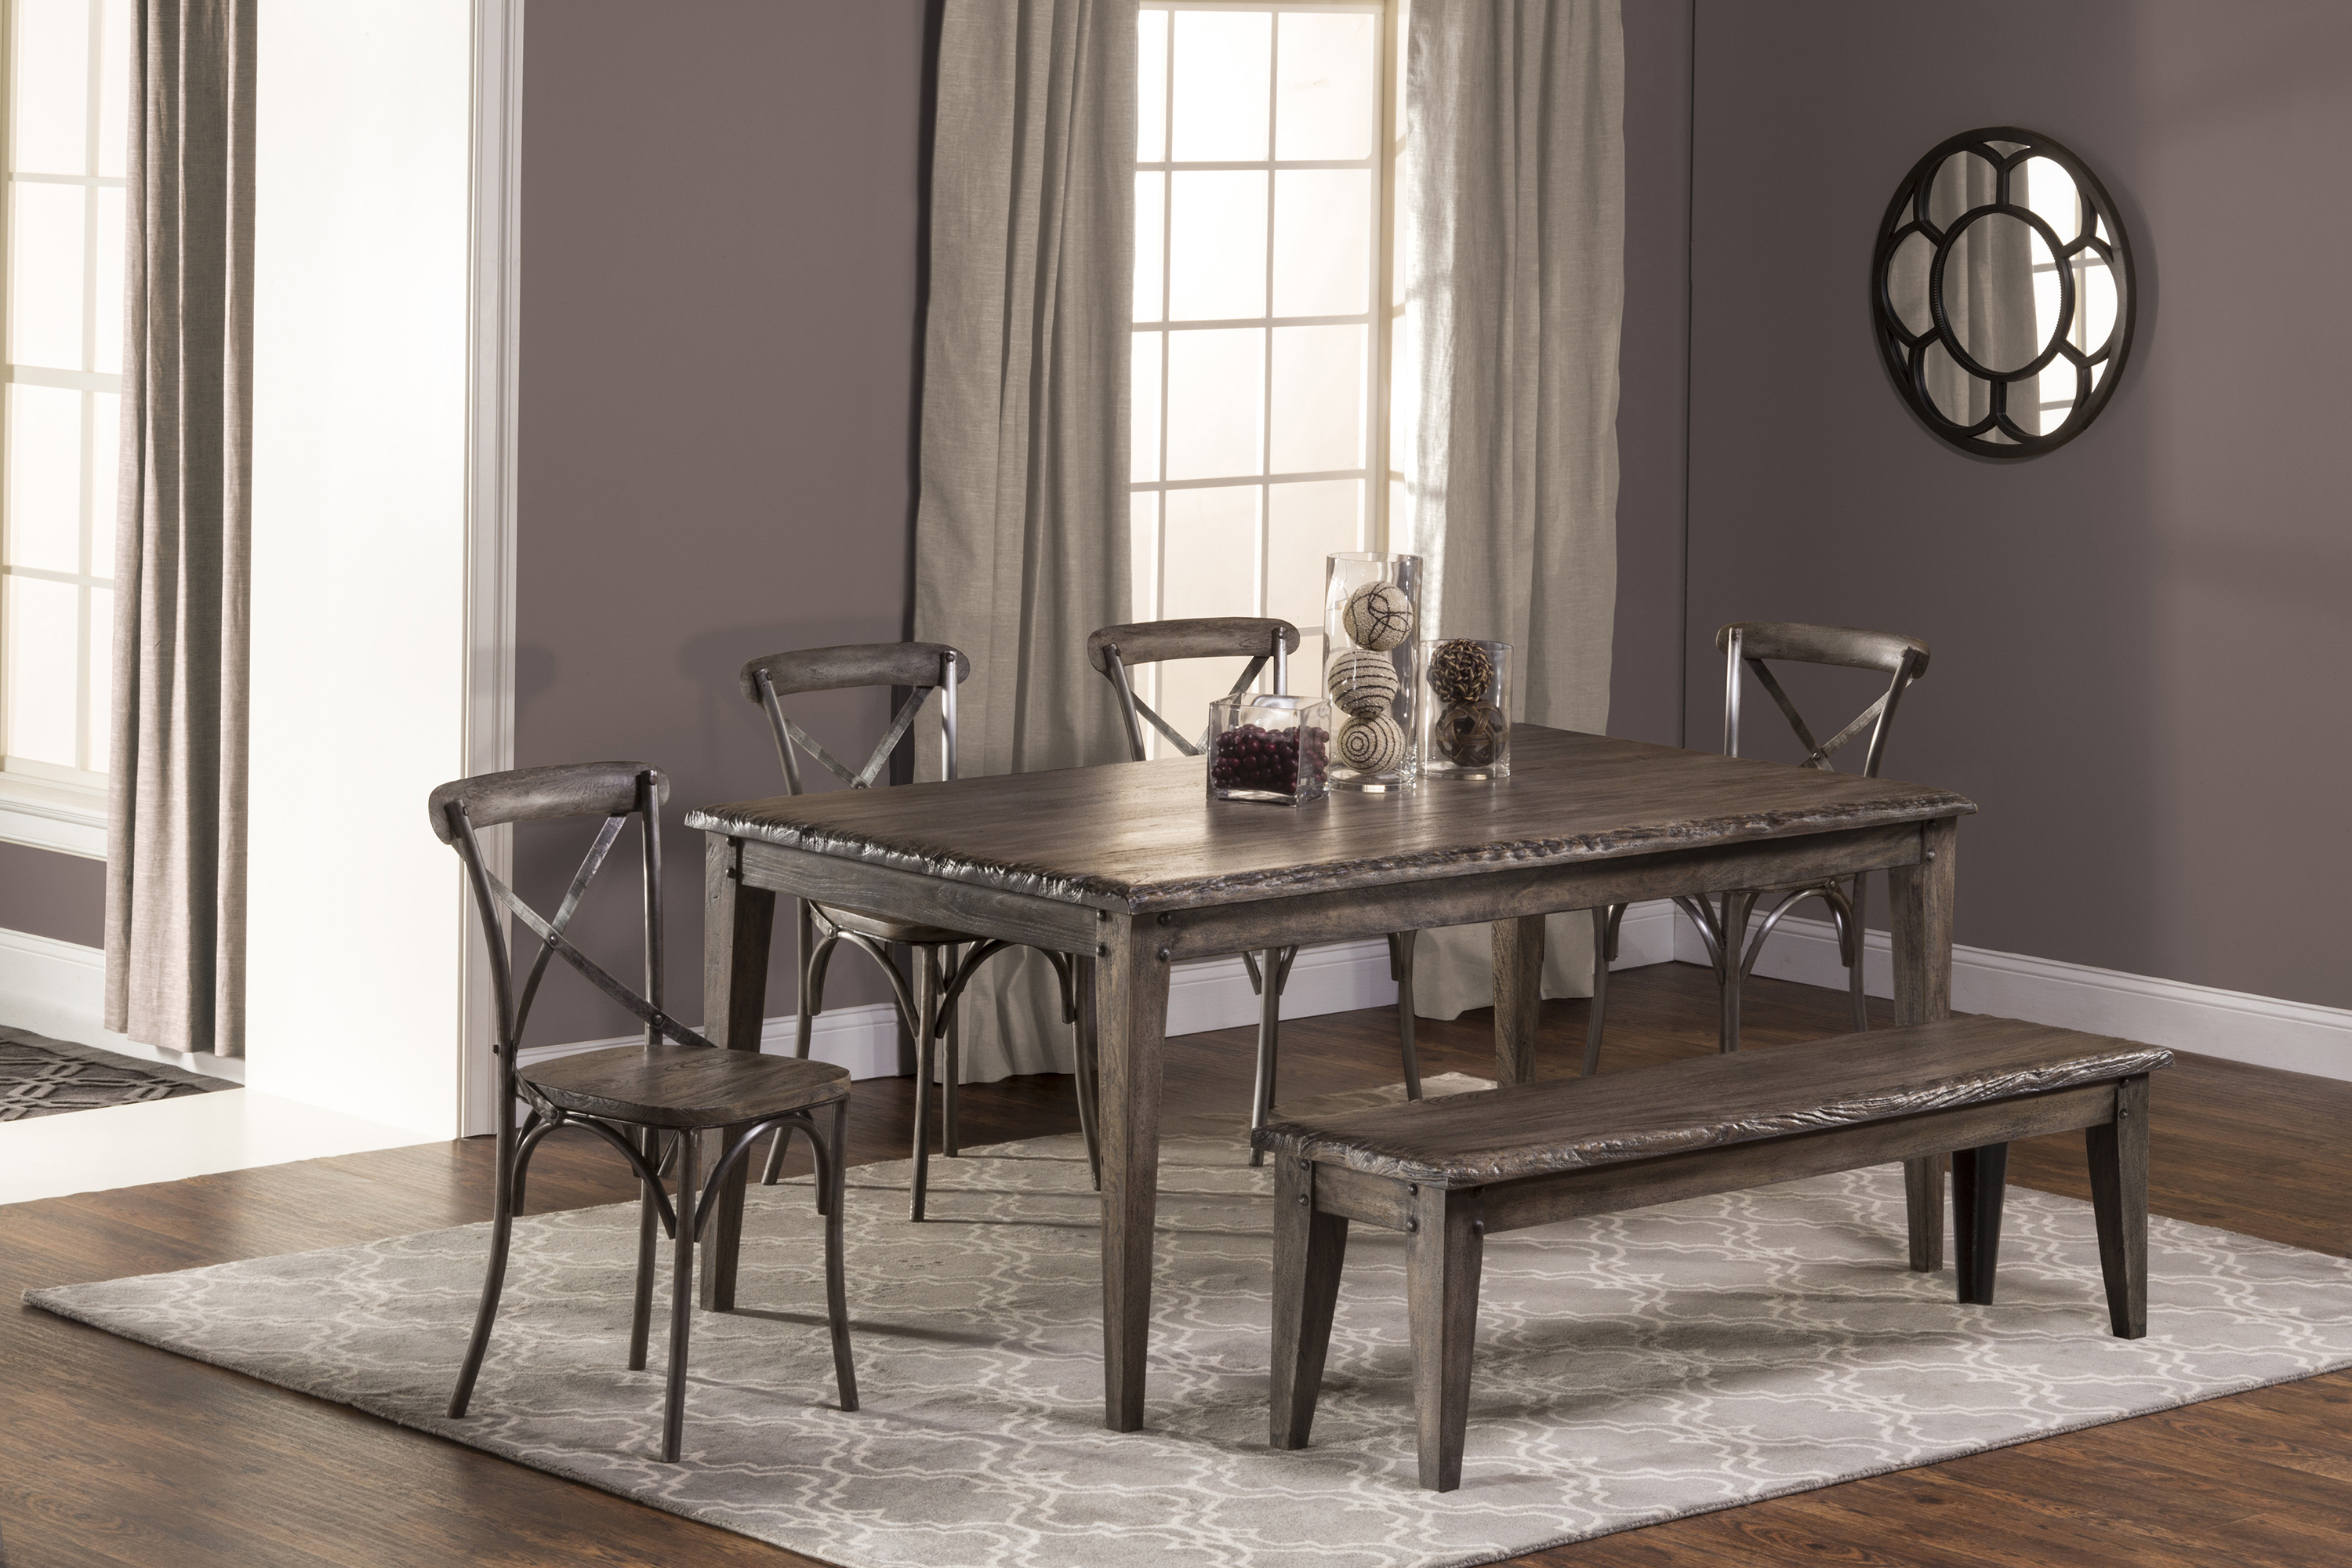 Hillsdale Lorient 6-Piece Rectangle Dining Set with X Back Din - Item Number: 5676DTRSB6